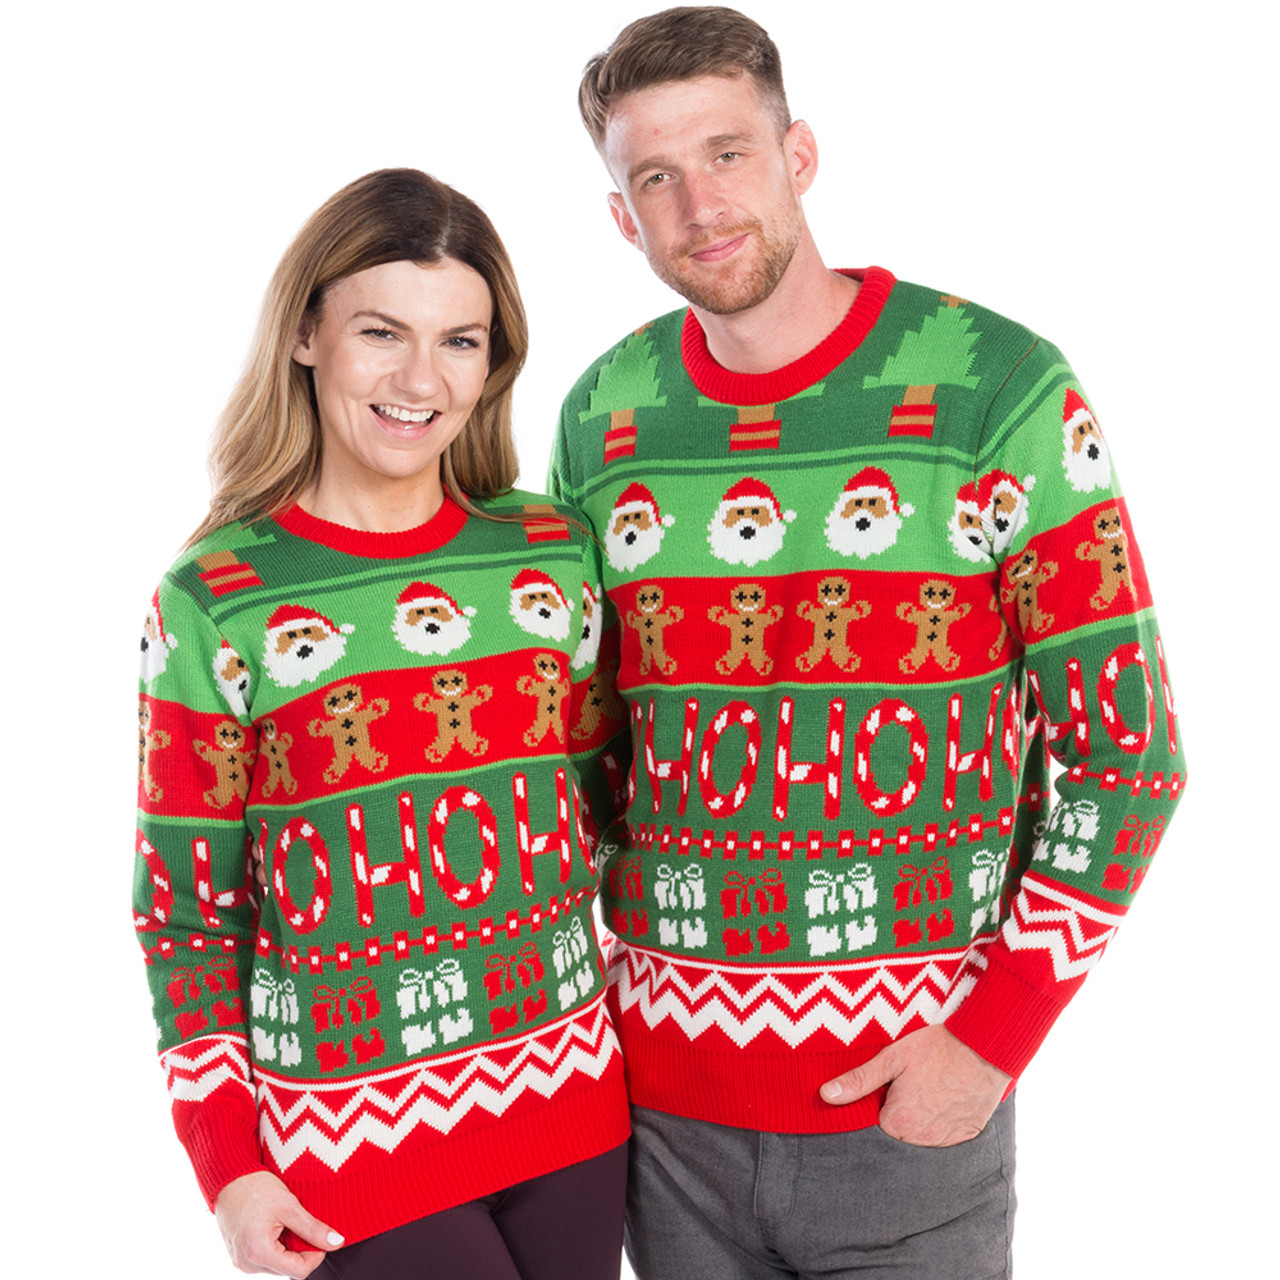 Christmas Sweaters For Couples.Christmas Sweaters For Couples